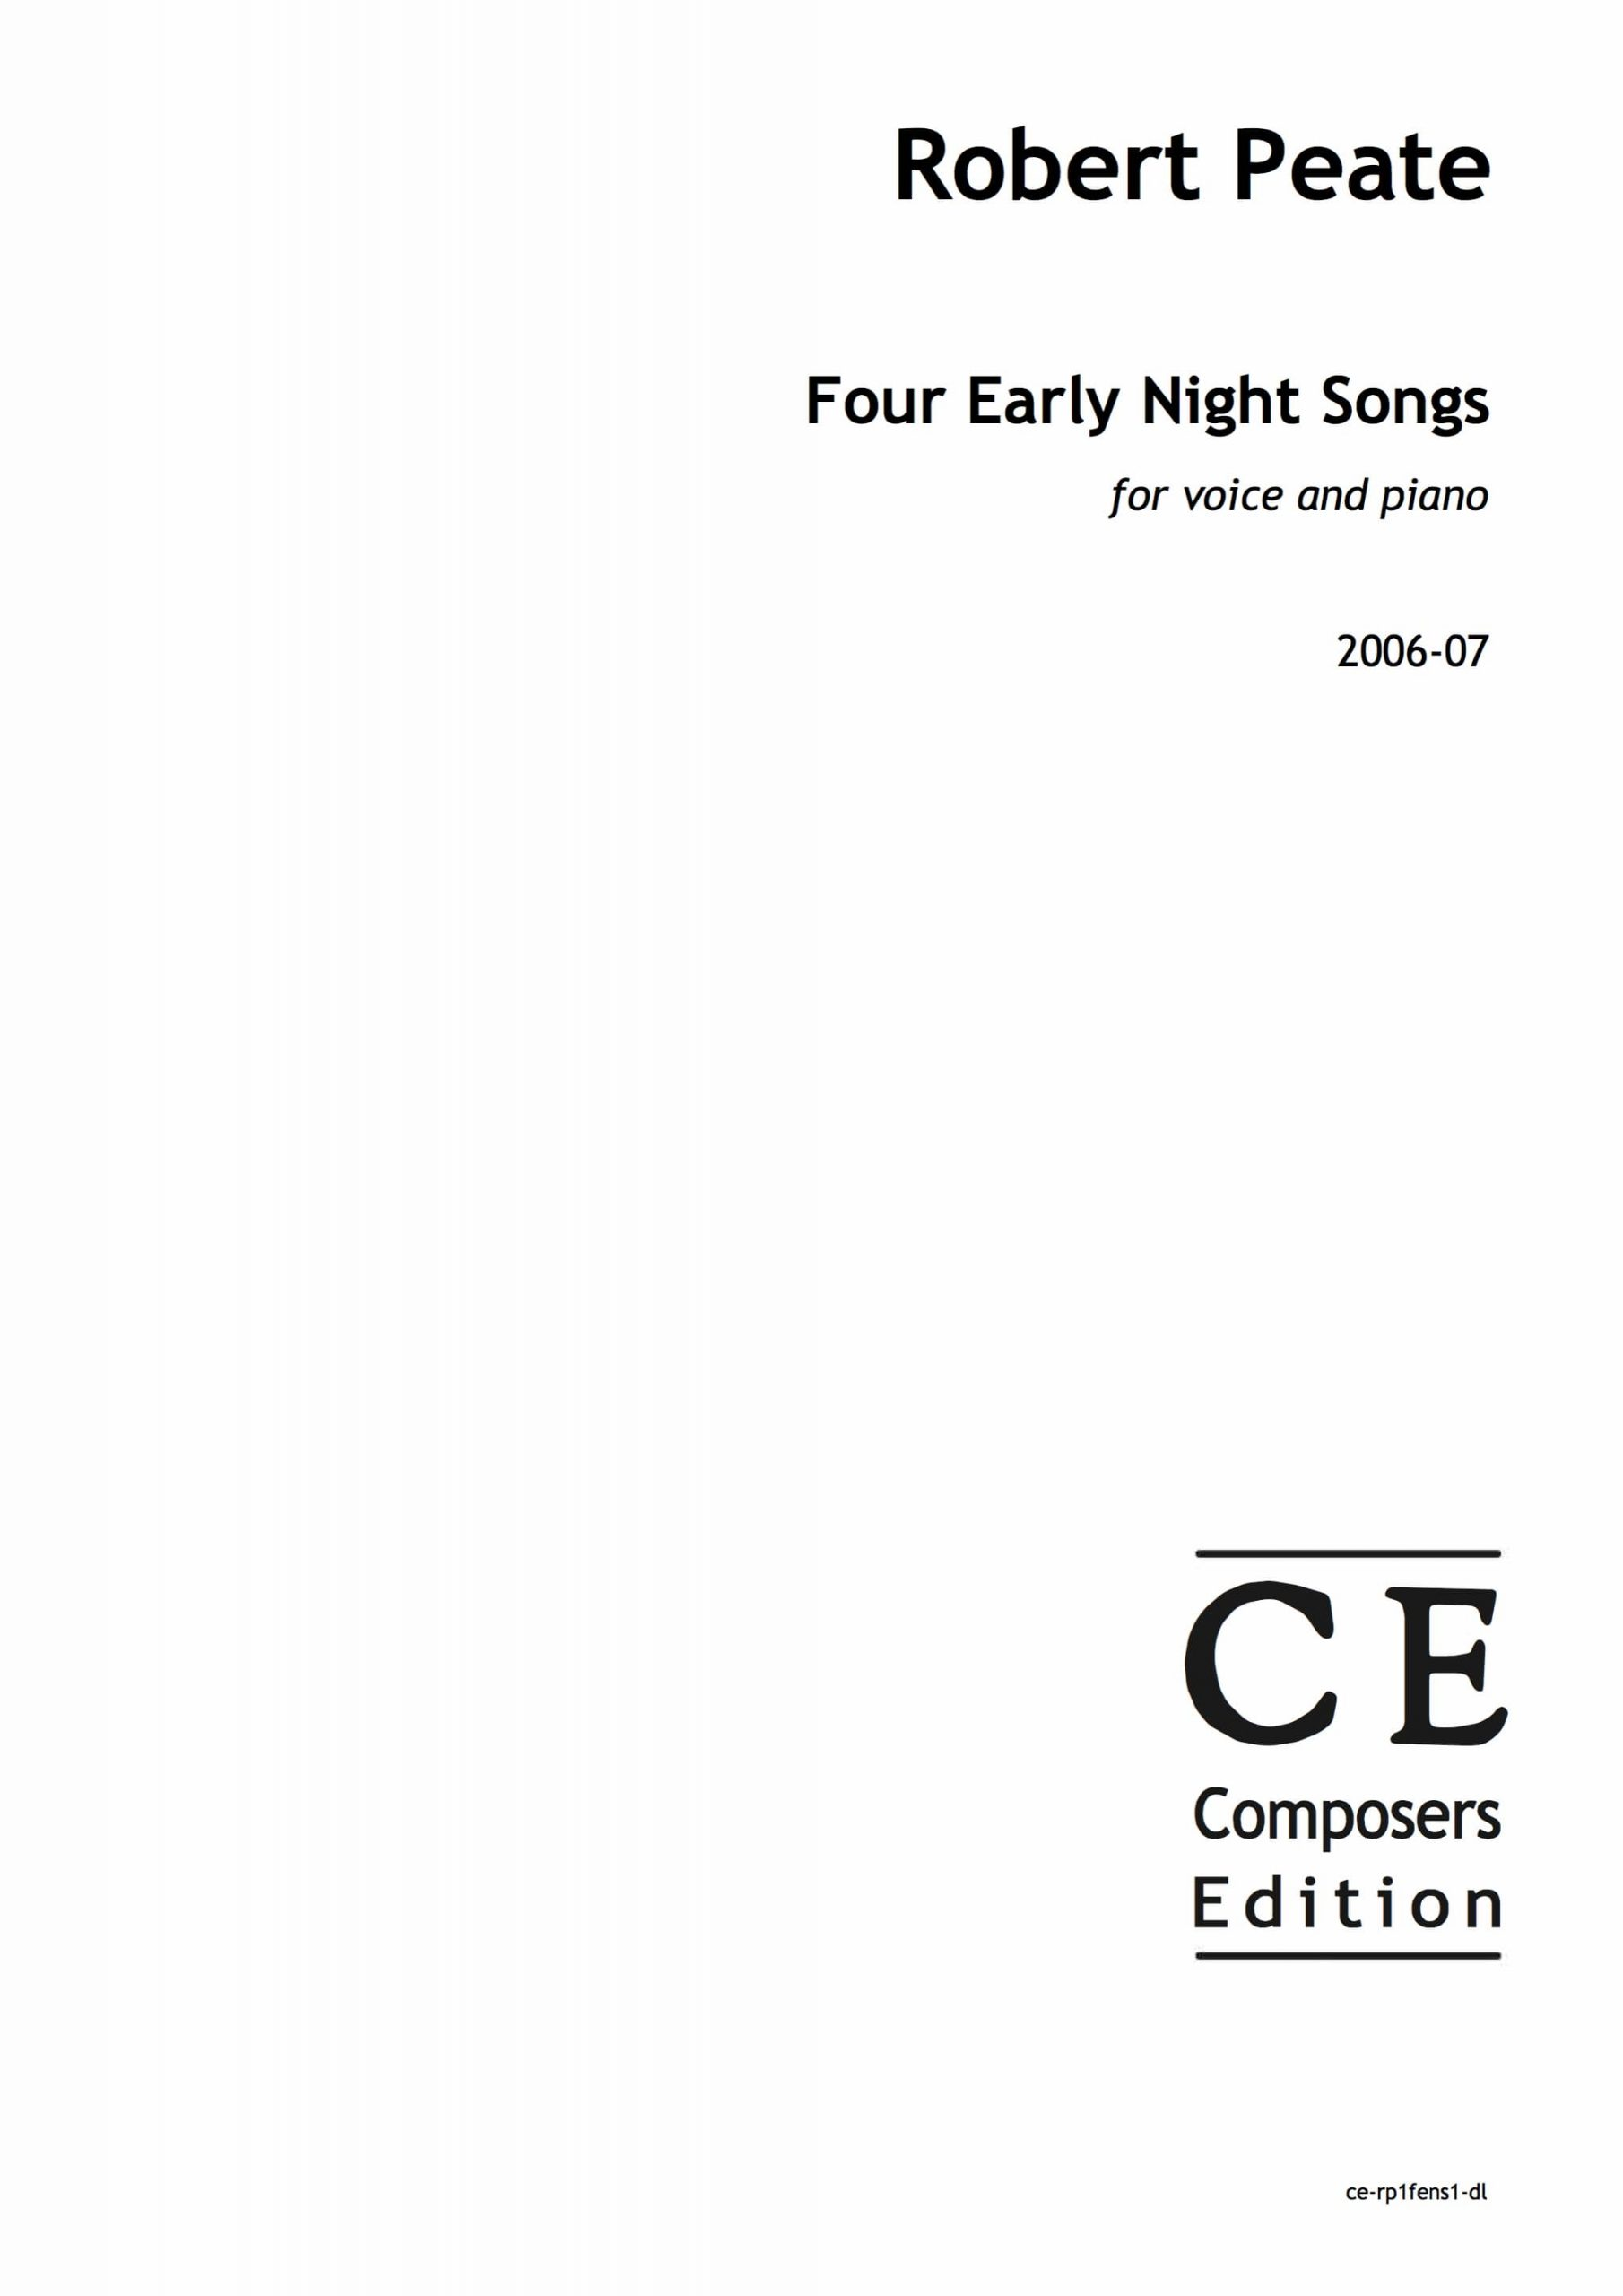 Robert Peate: Four Early Night Songs for voice and piano